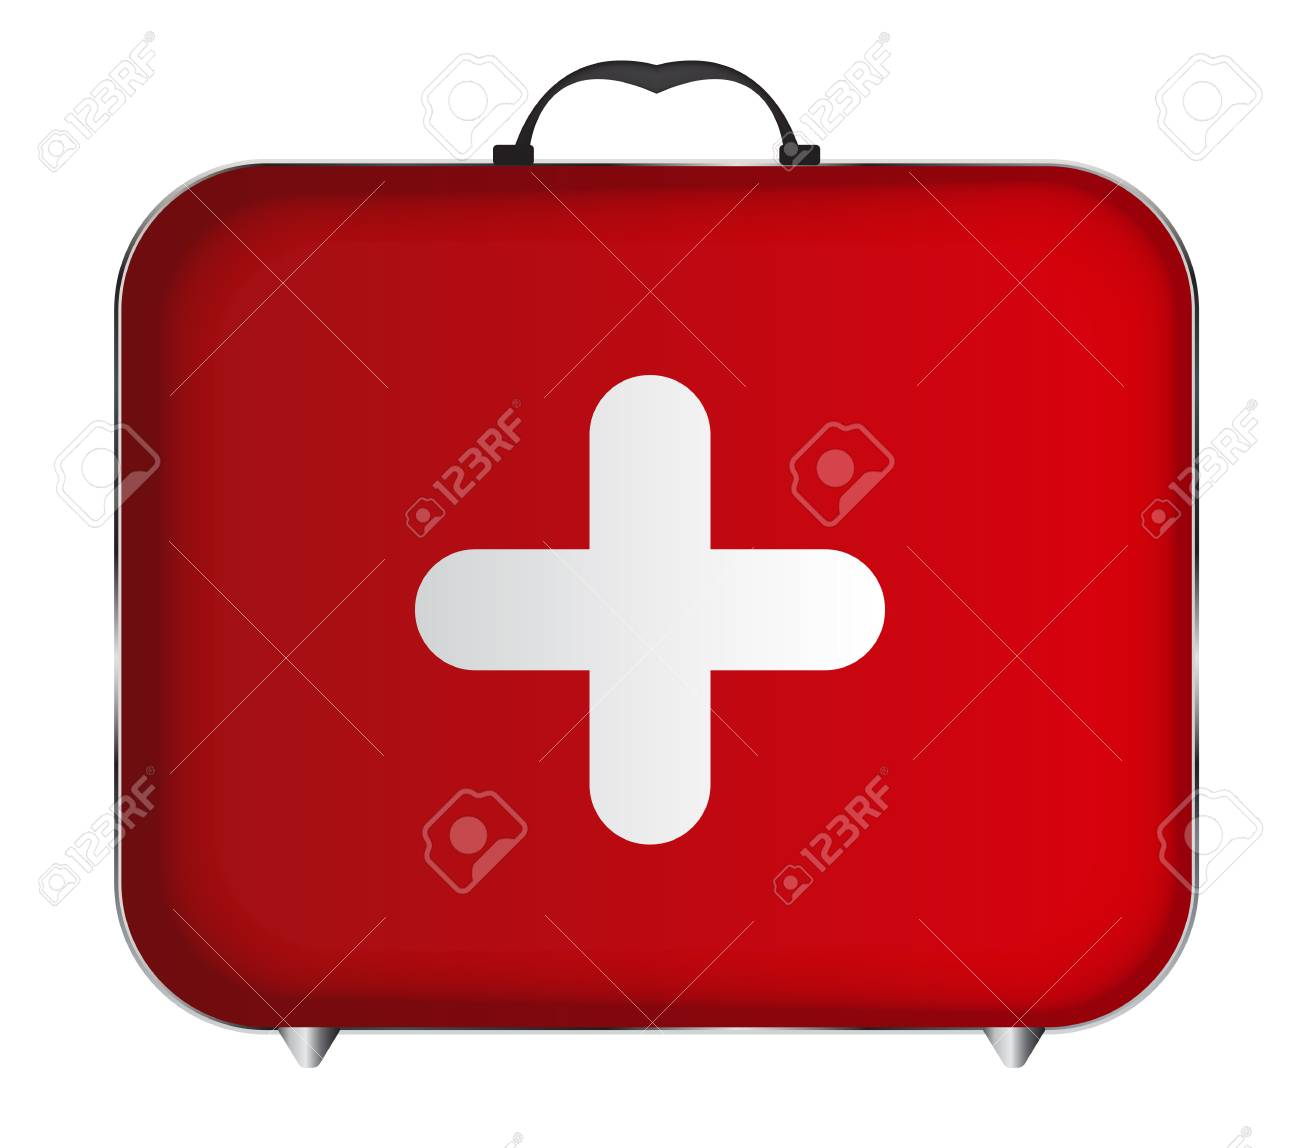 Red Medical Bag With A Cross Vector Illustration Royalty Free